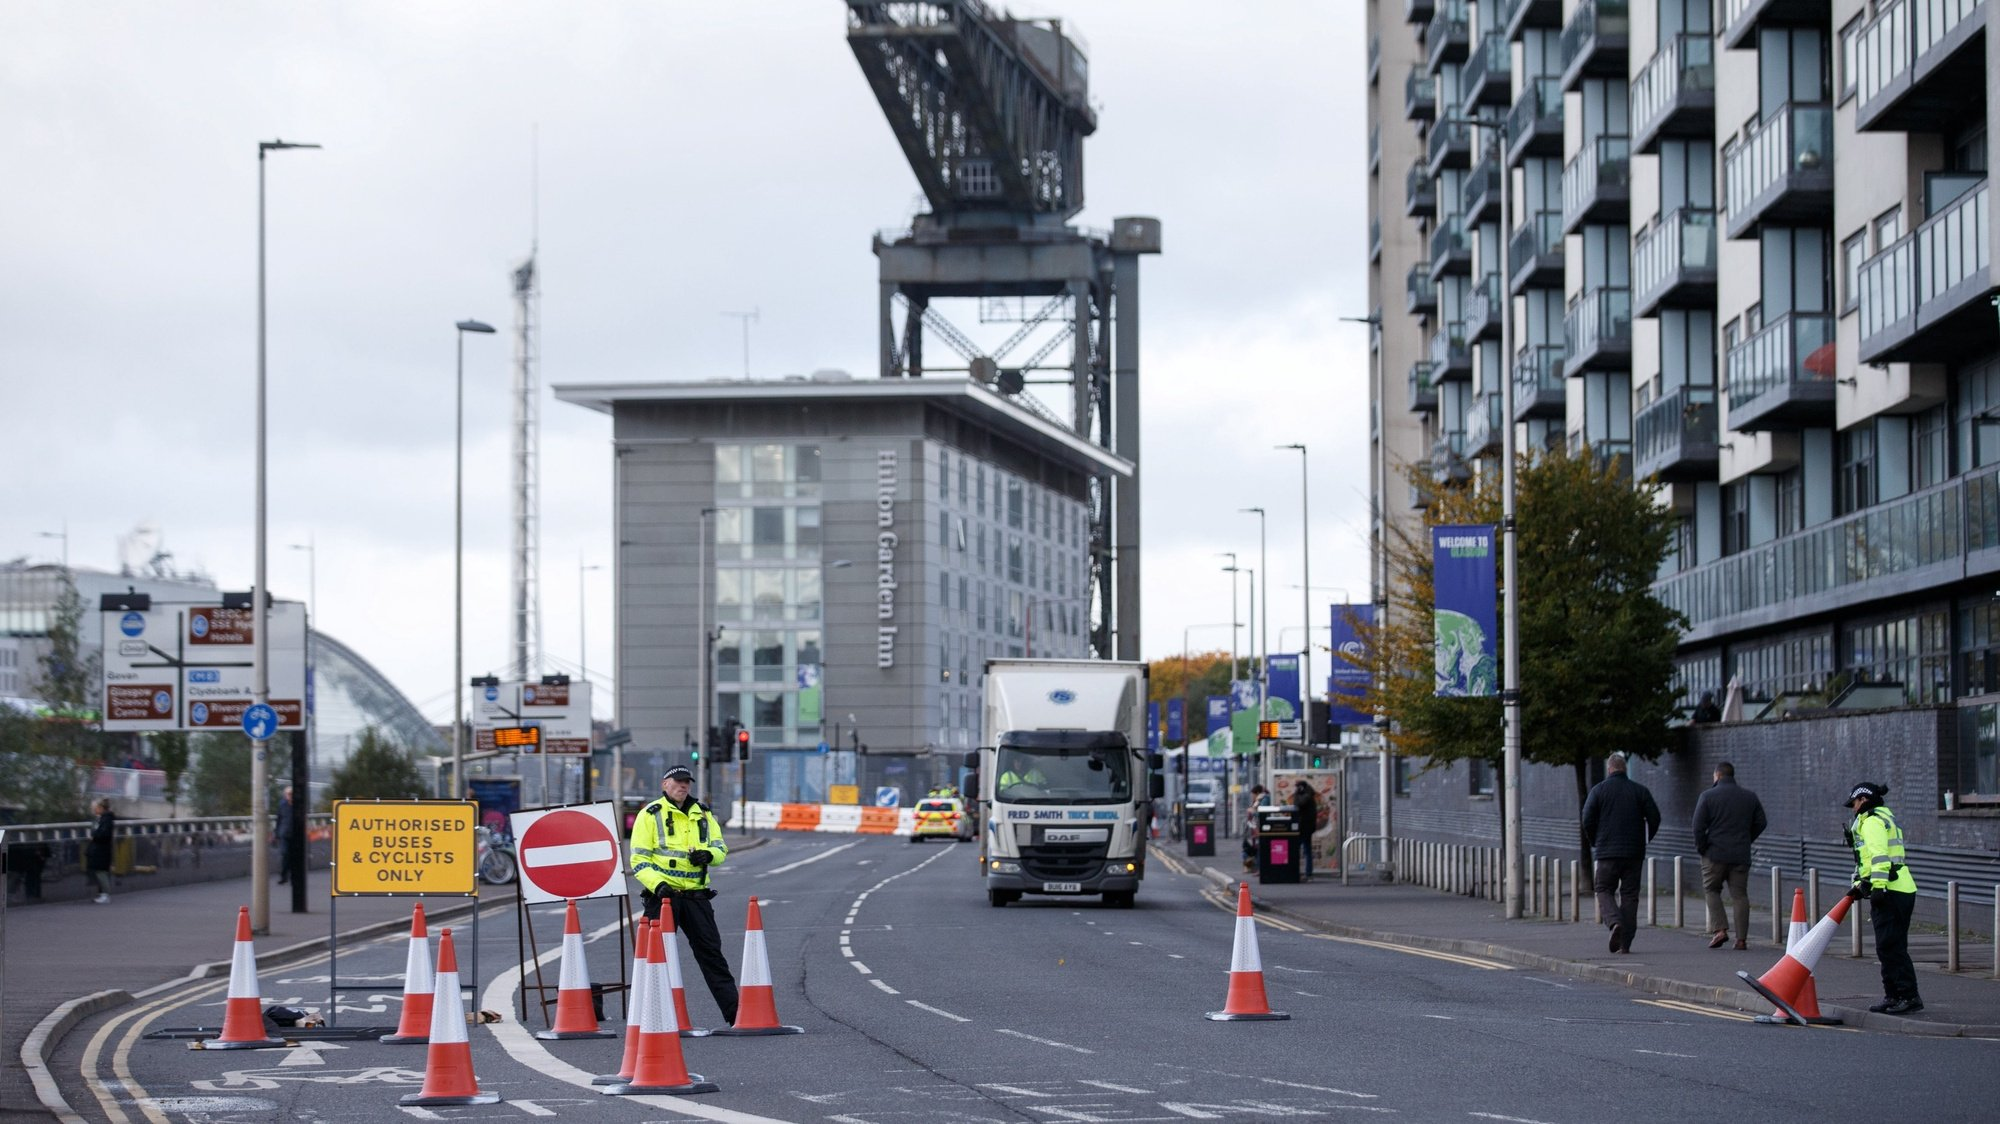 epa09545716 Police closed the roads around the Hydro and the venue for the COP26 in Glasgow, Britain, 25 October 2021. The 2021 United Nations Climate Change Conference, also known as COP26 and as the Glasgow Conference, is the 26th United Nations Climate Change conference. The COP26 summit from 31 October to 12 November 2021 will bring parties together to accelerate action towards the goals of the Paris Agreement and the UN Framework Convention on Climate Change.  EPA/ROBERT PERRY